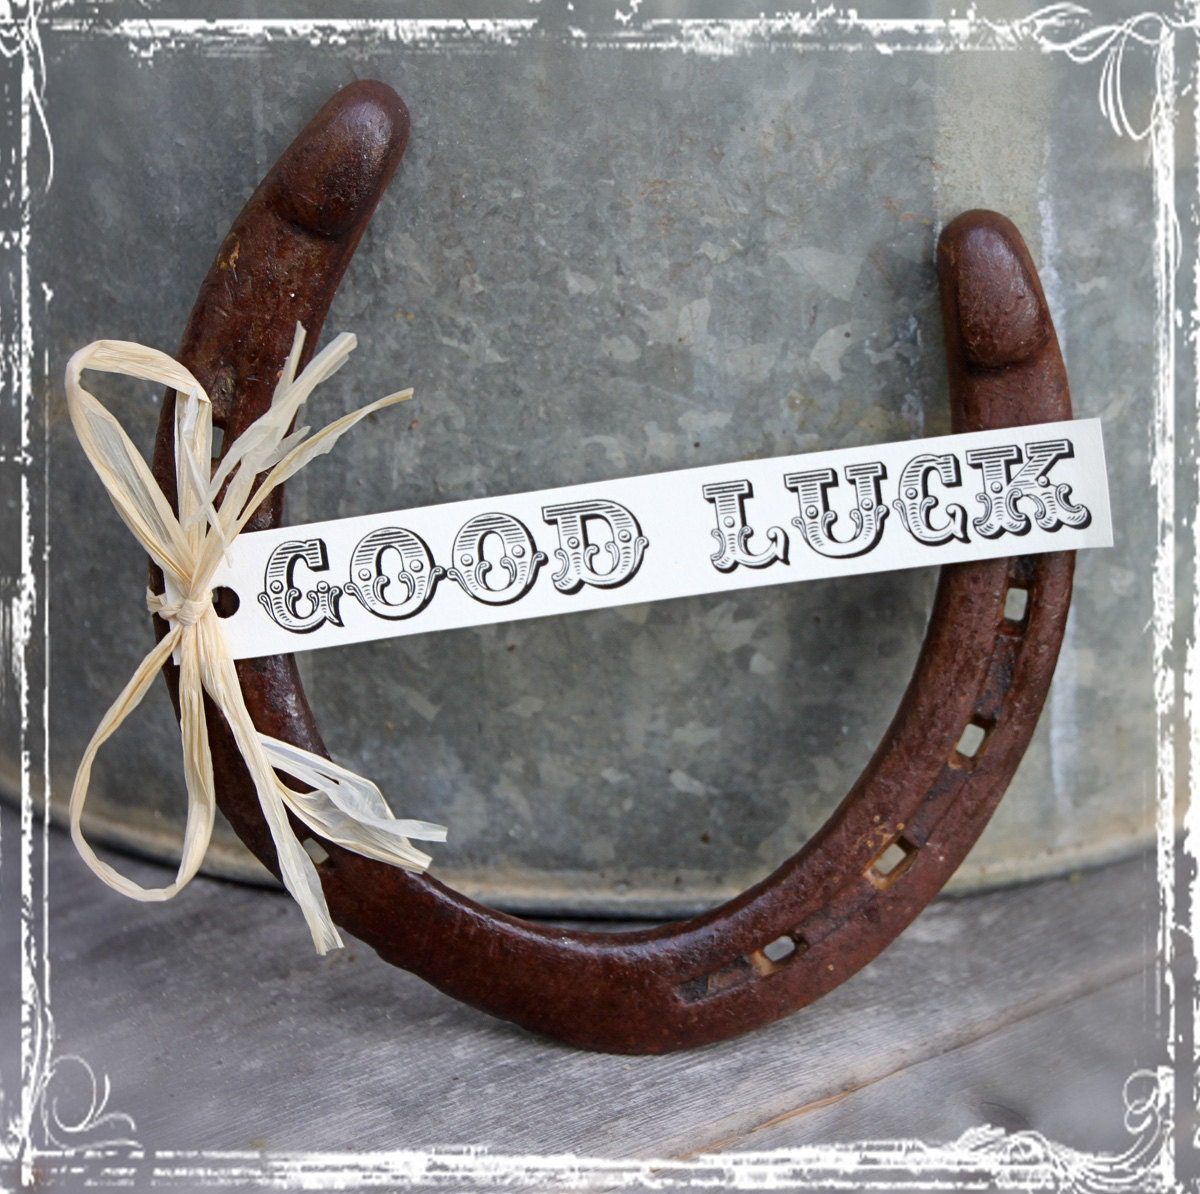 Horseshoe Wedding Gift: Good Luck Horseshoe Wedding Gift Decor For By Sparkleandposy